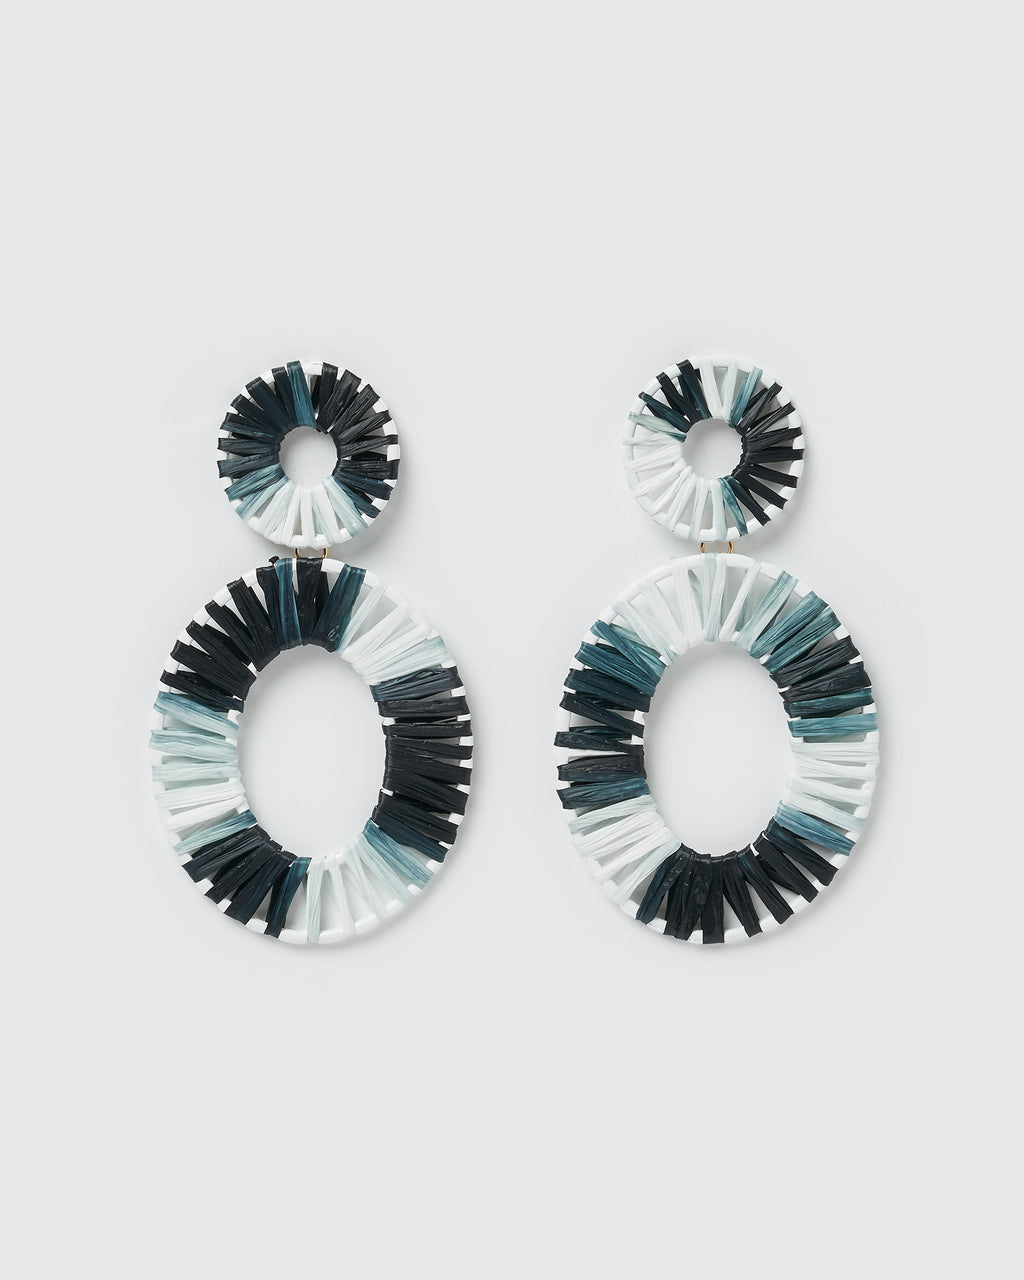 Izoa True Spirit Earrings Black White